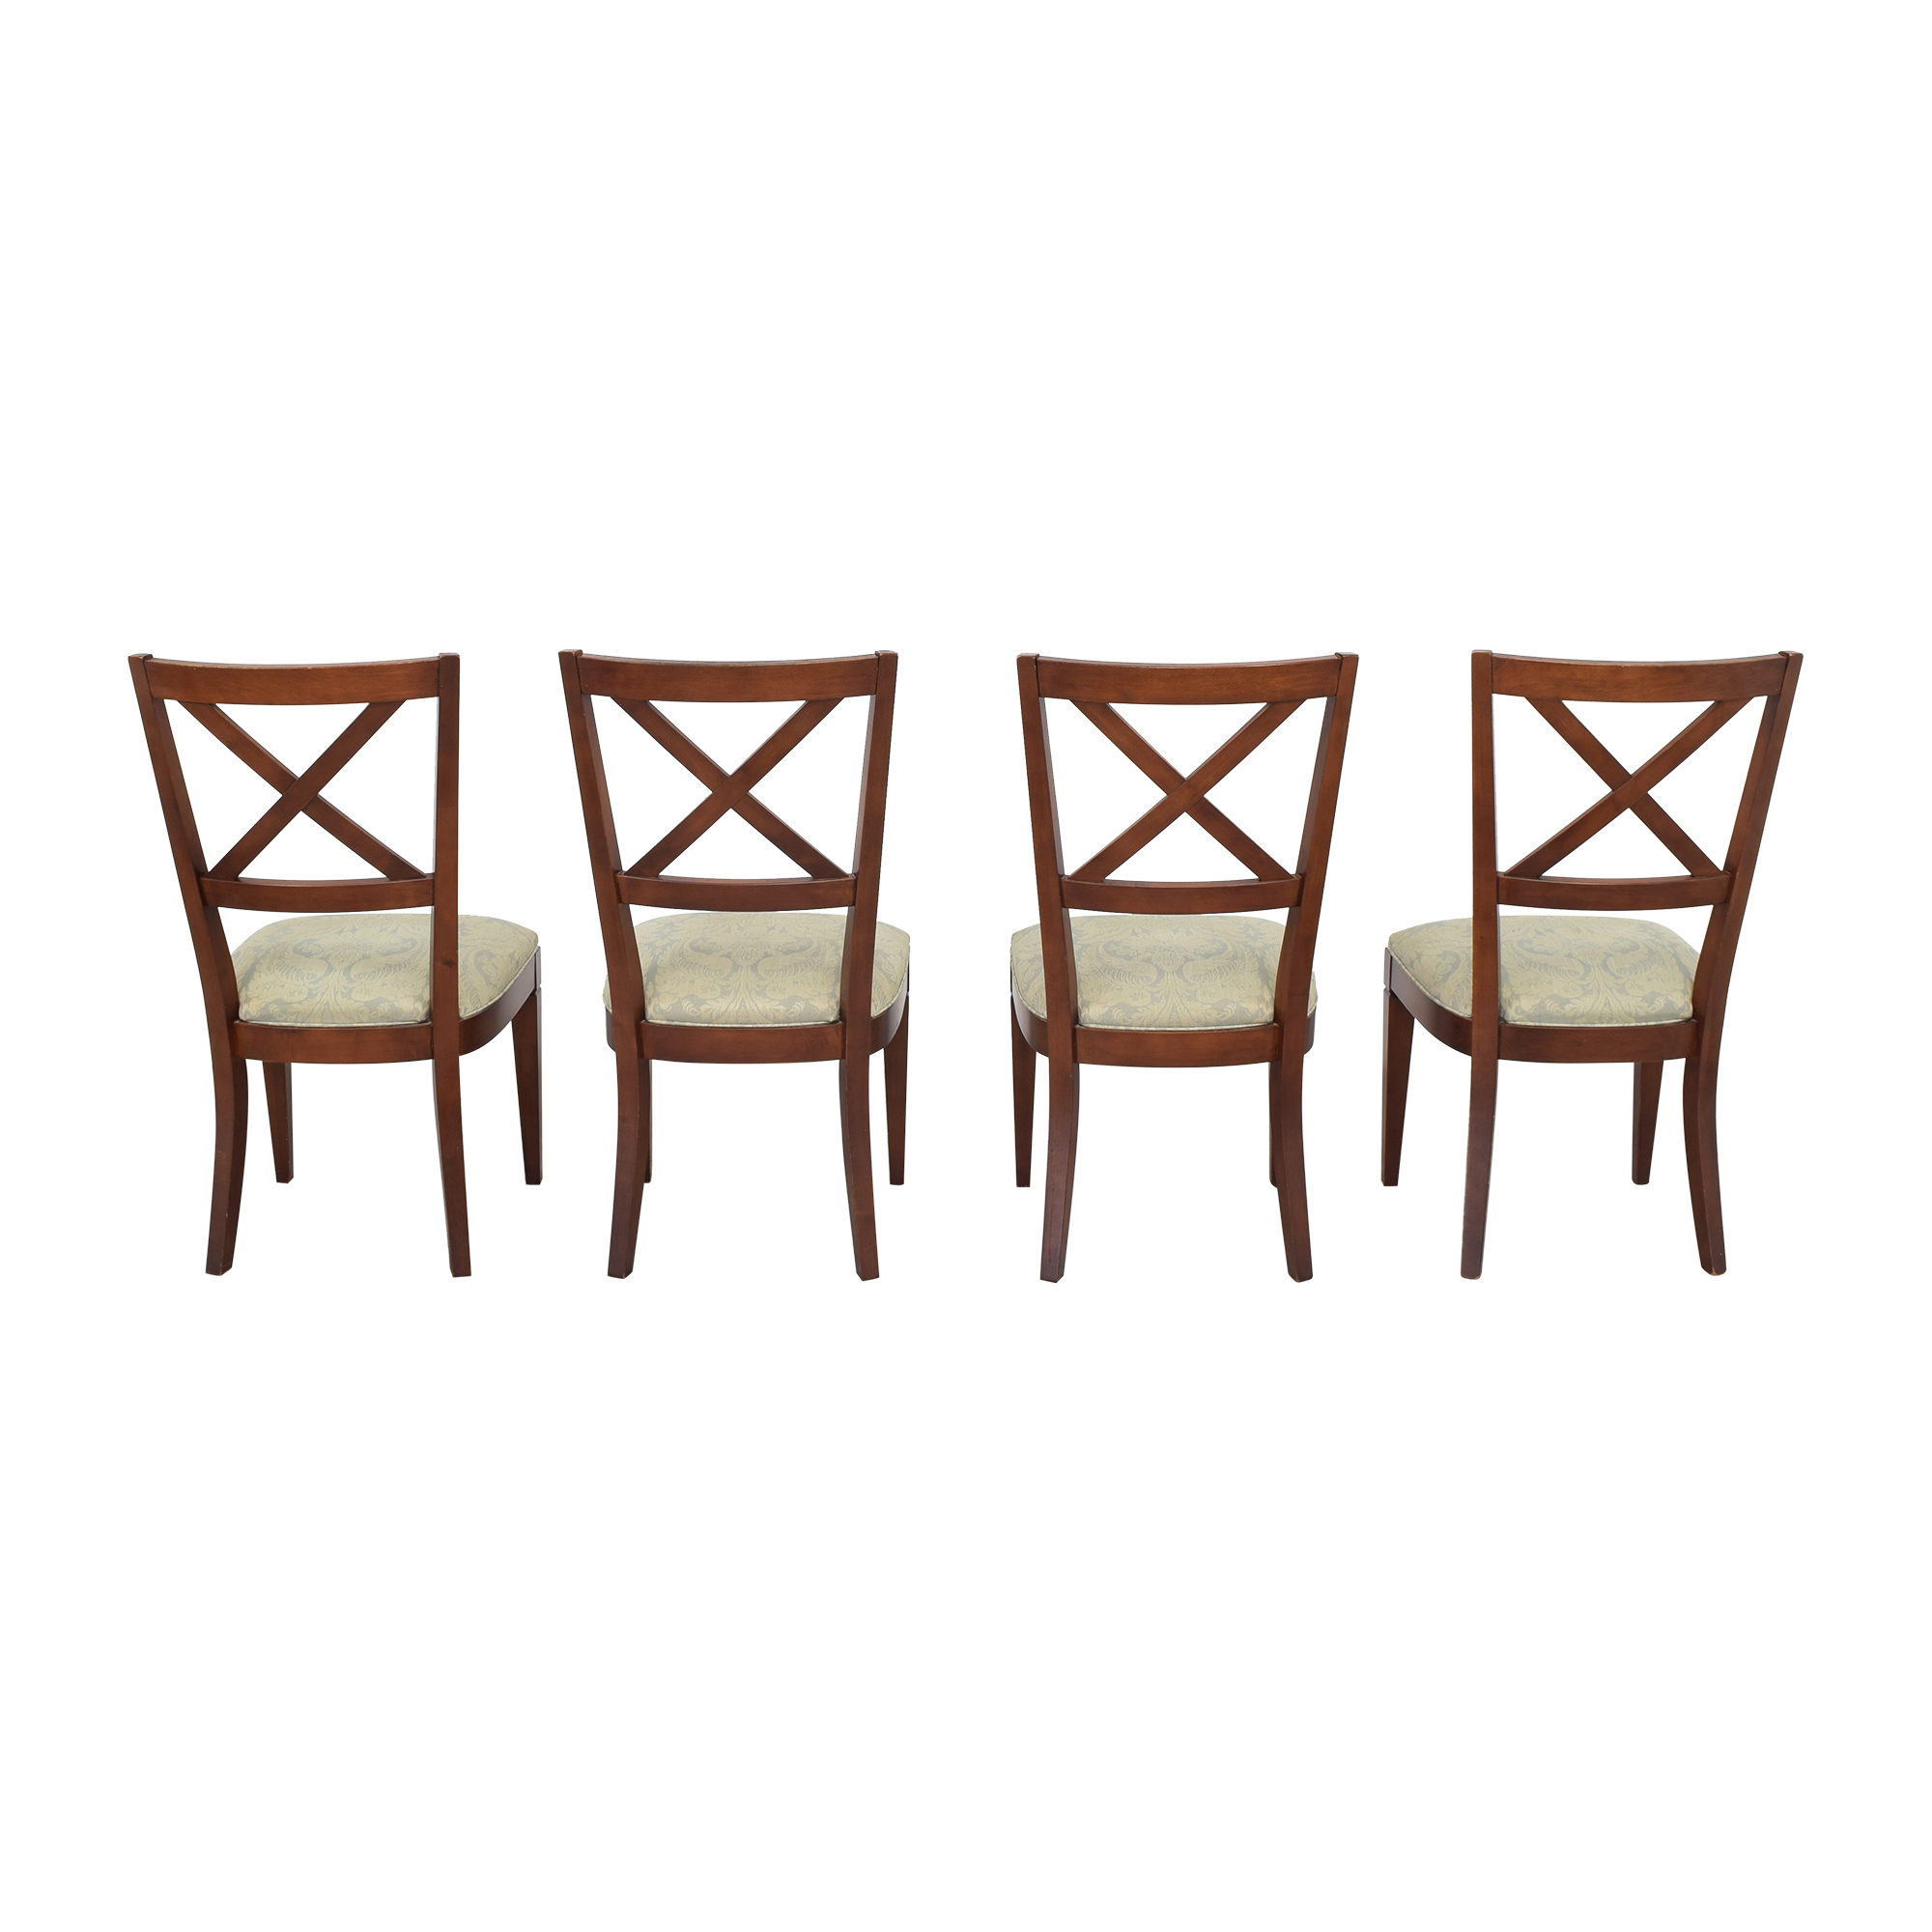 Ethan Allen Ethan Allen Dining Chairs nyc